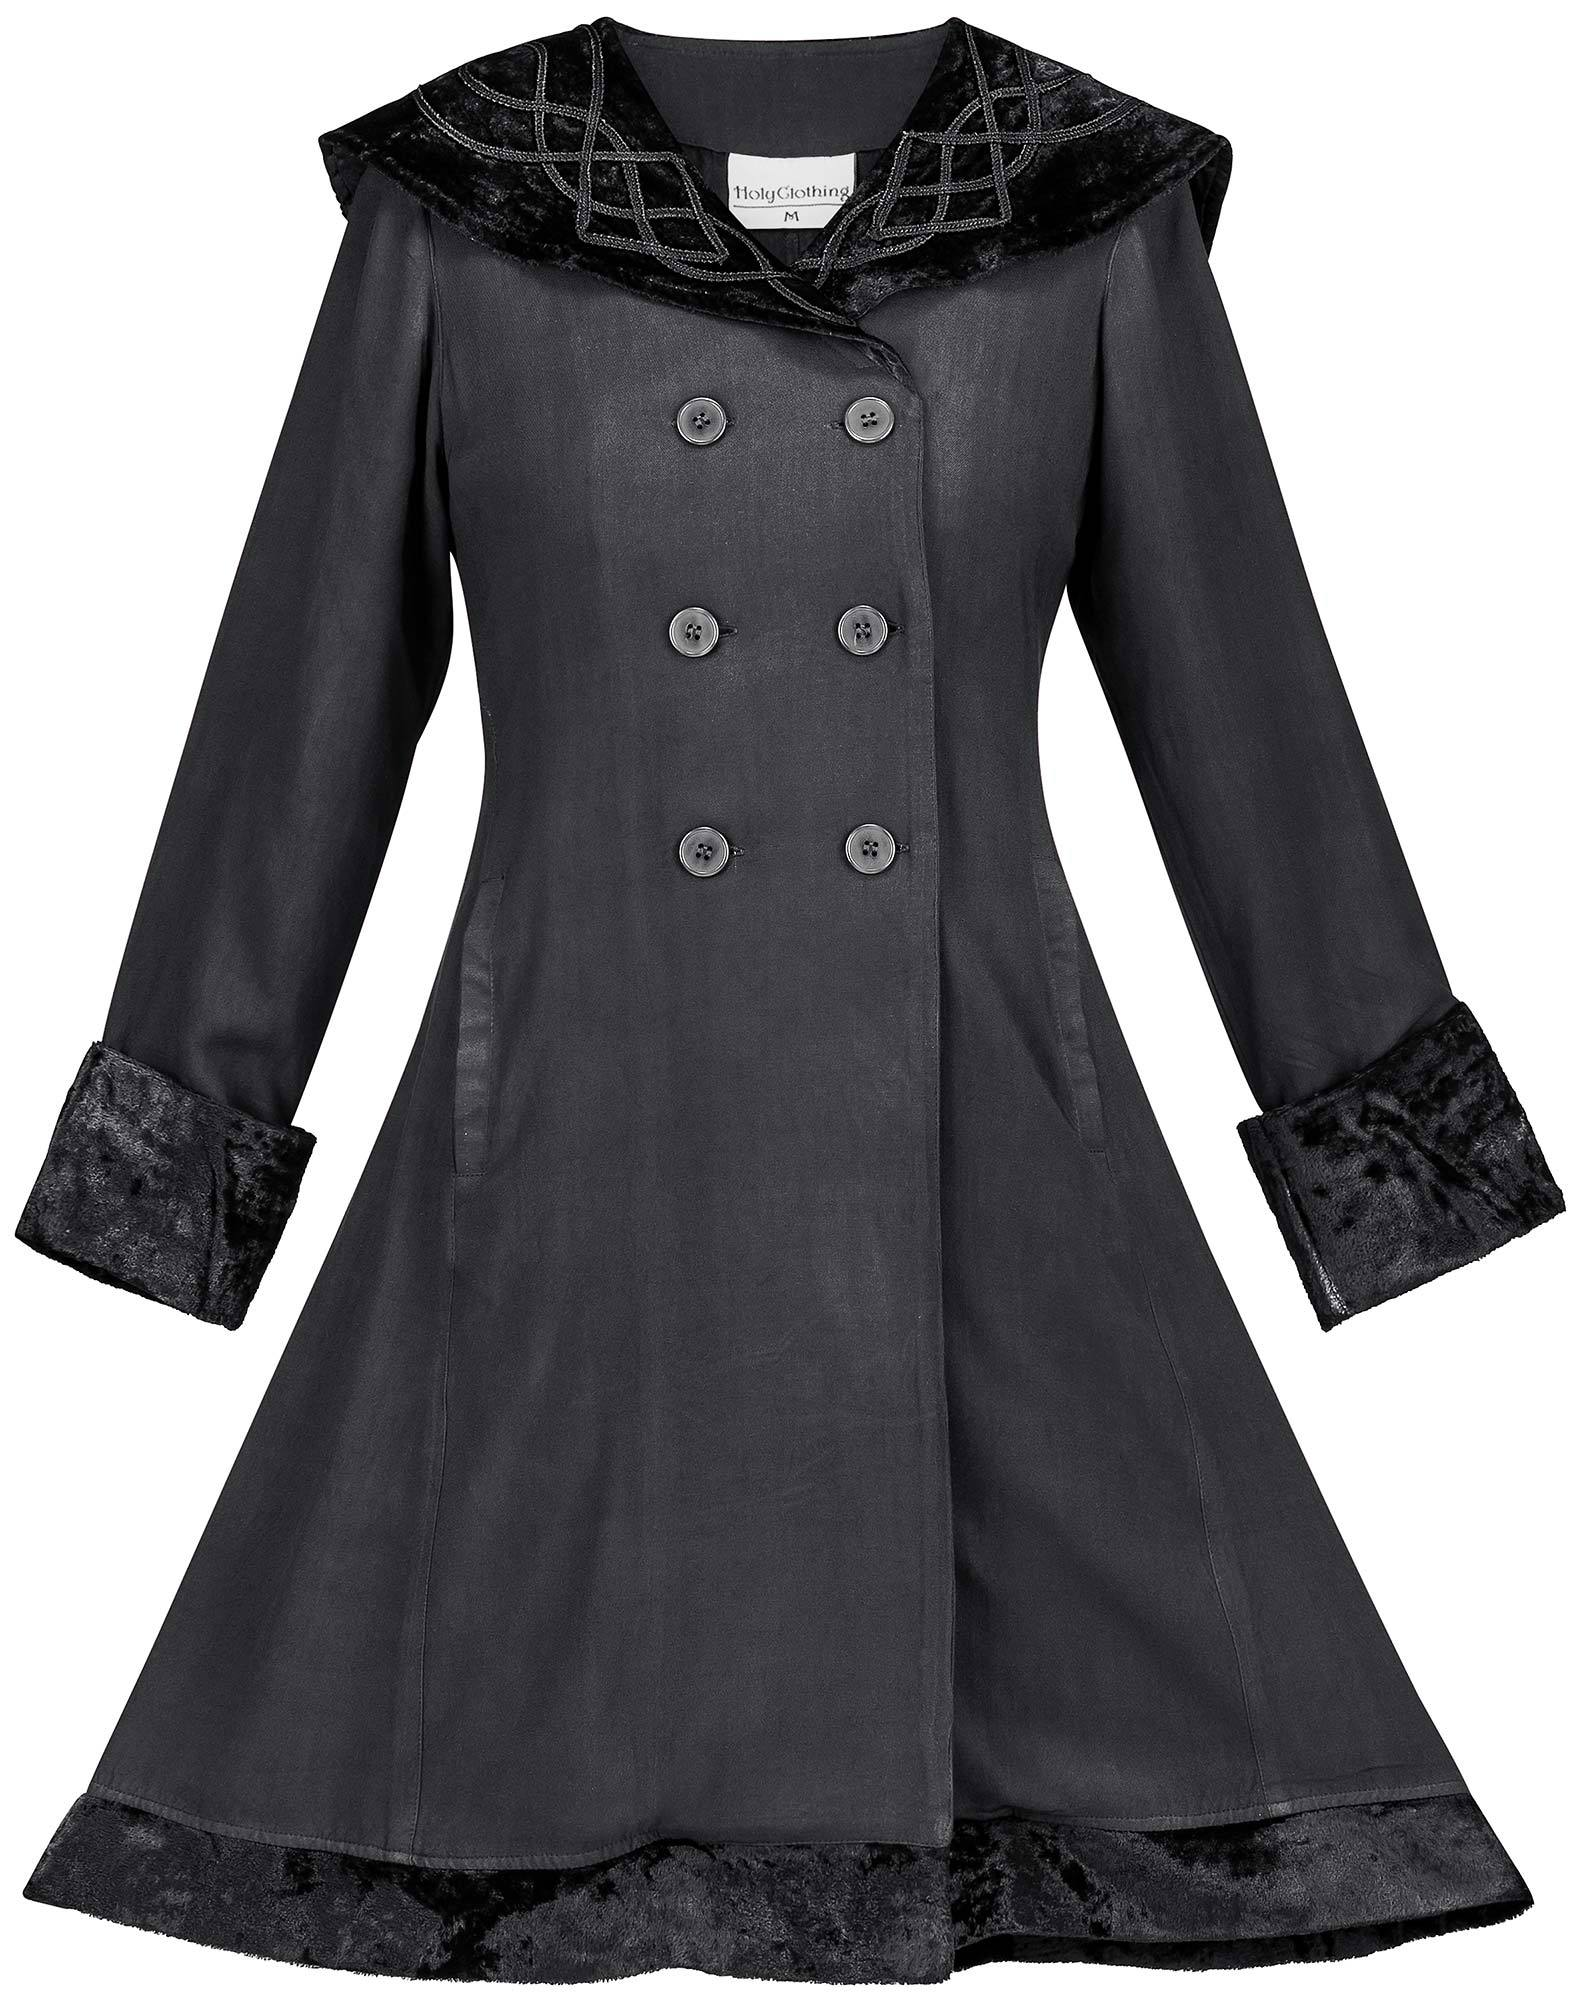 new images of offer discounts 100% satisfaction Kelly Coat Girls